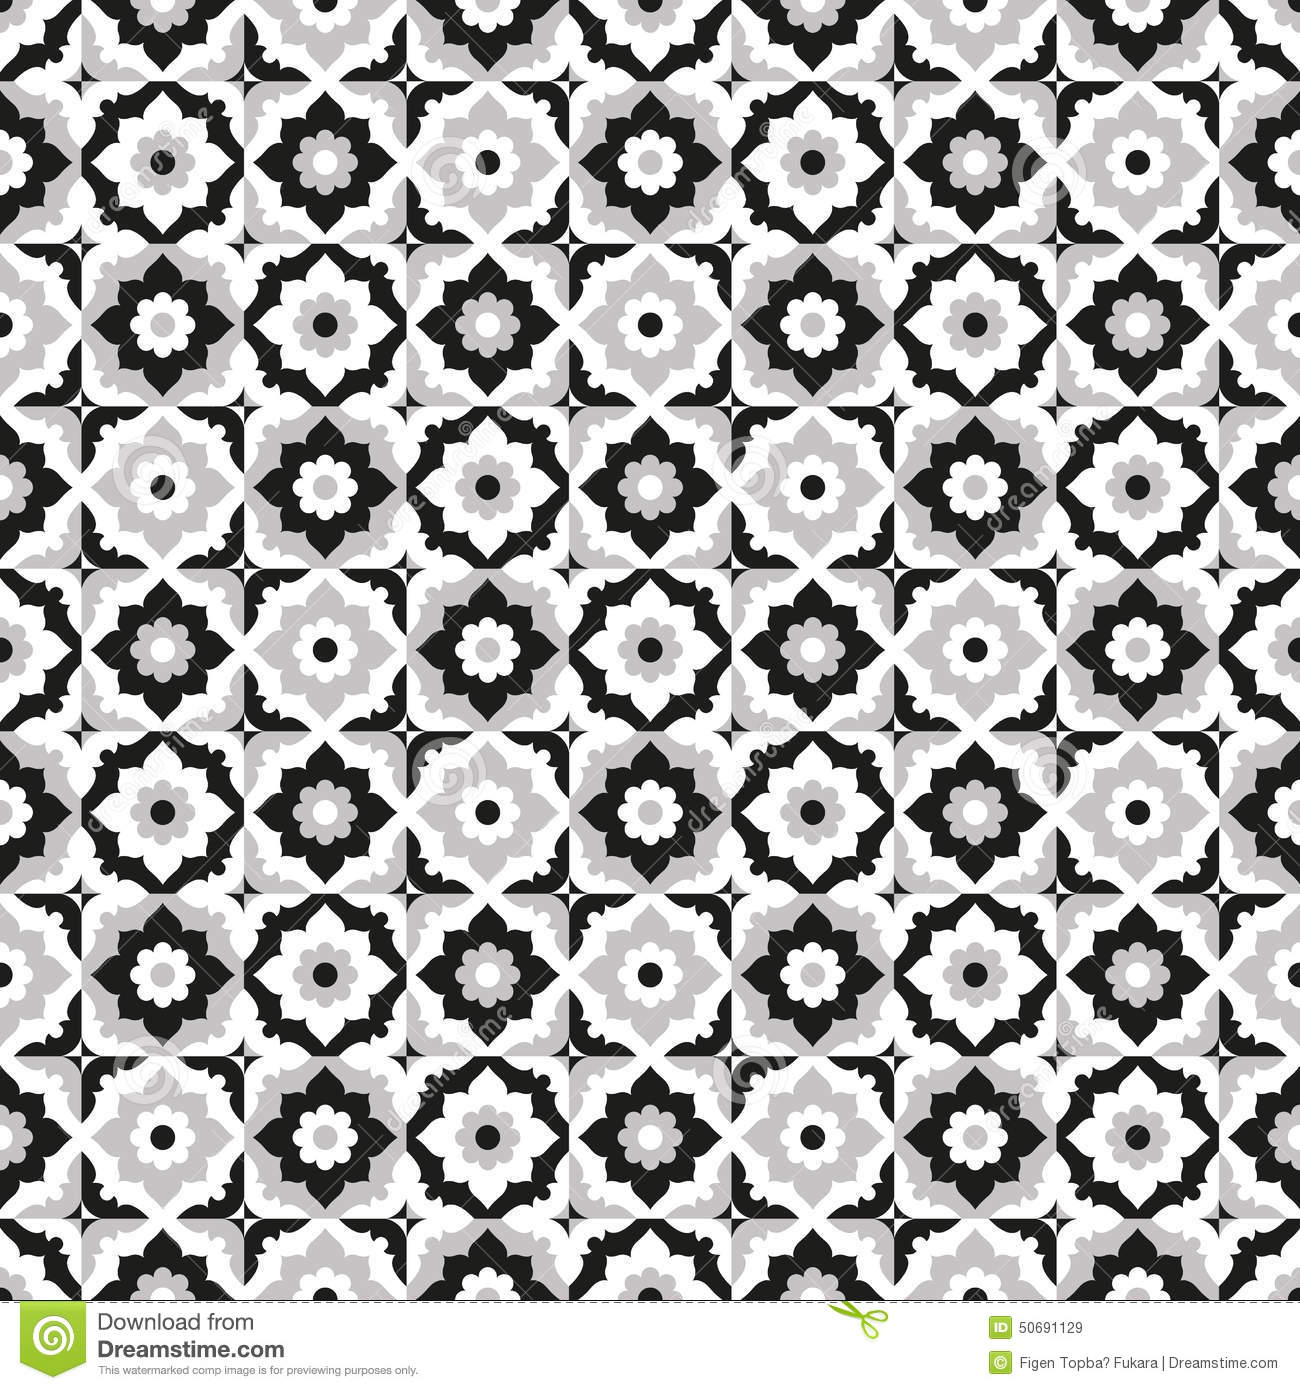 Stock Illustration Seamless Pattern Ceramic Black White Tile Design Floral Ornate Endless Texture Vector Daisy Background Image50691129 on hexagon floor tile